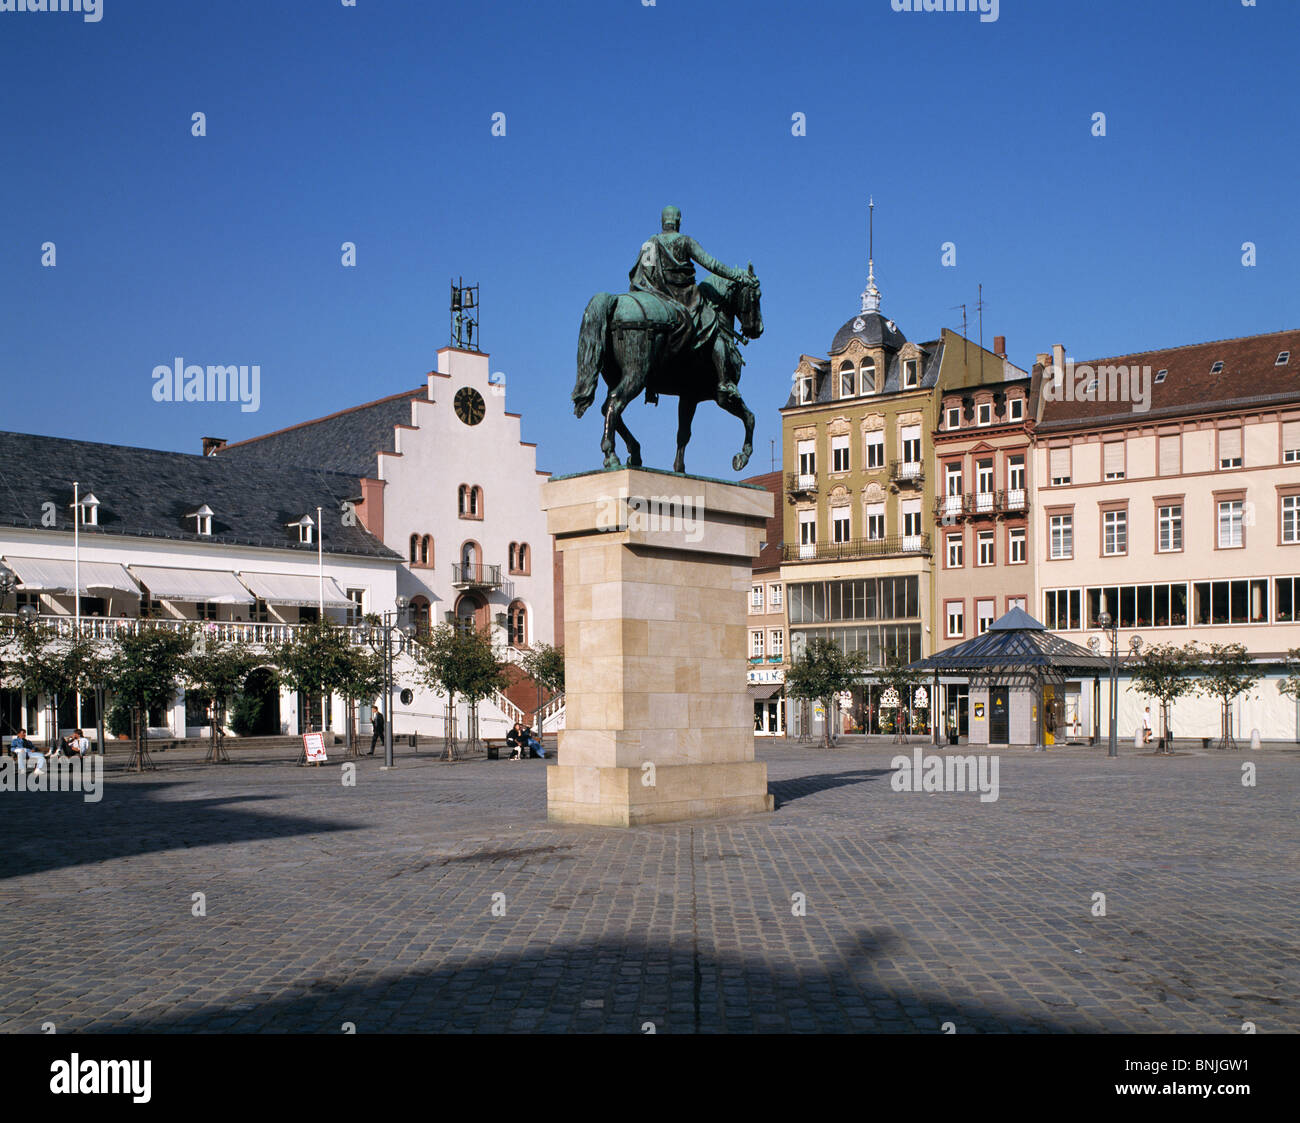 germany rhineland palatinate landau pfalz helmbach wellbach deutsche stock photo 30526525 alamy. Black Bedroom Furniture Sets. Home Design Ideas